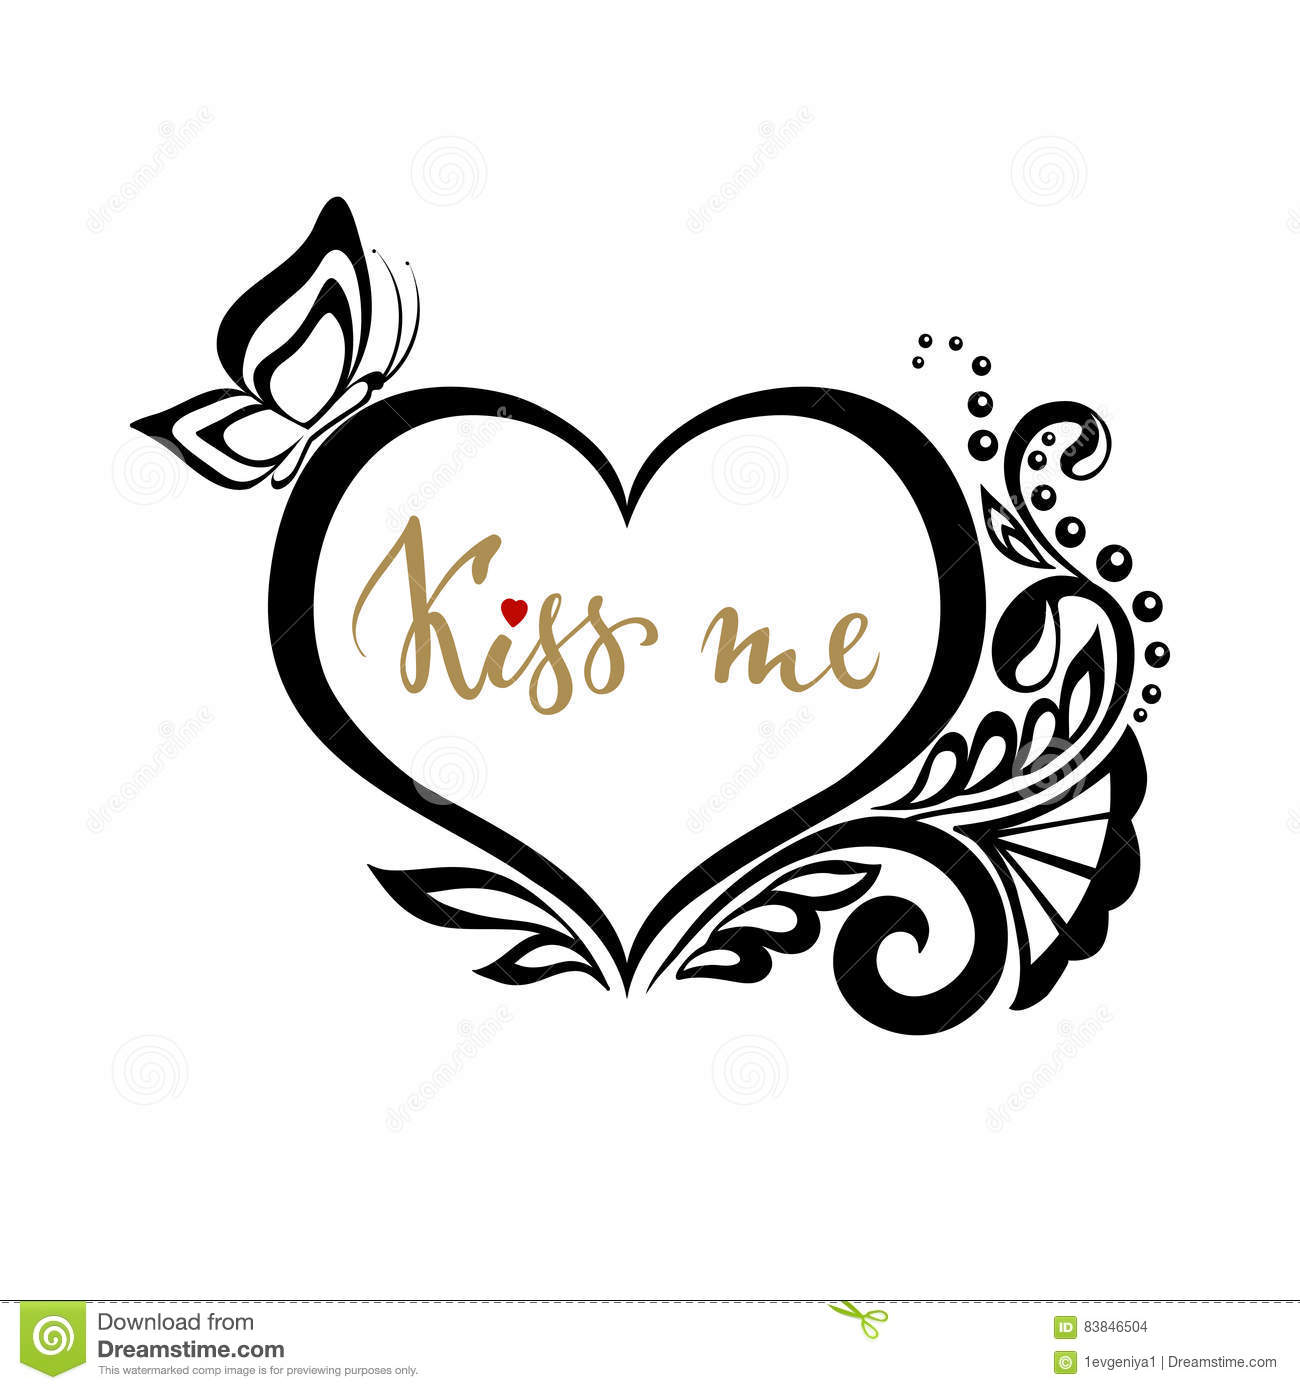 Kiss Me Hand Drawn Calligraphy And Brush Pen Lettering